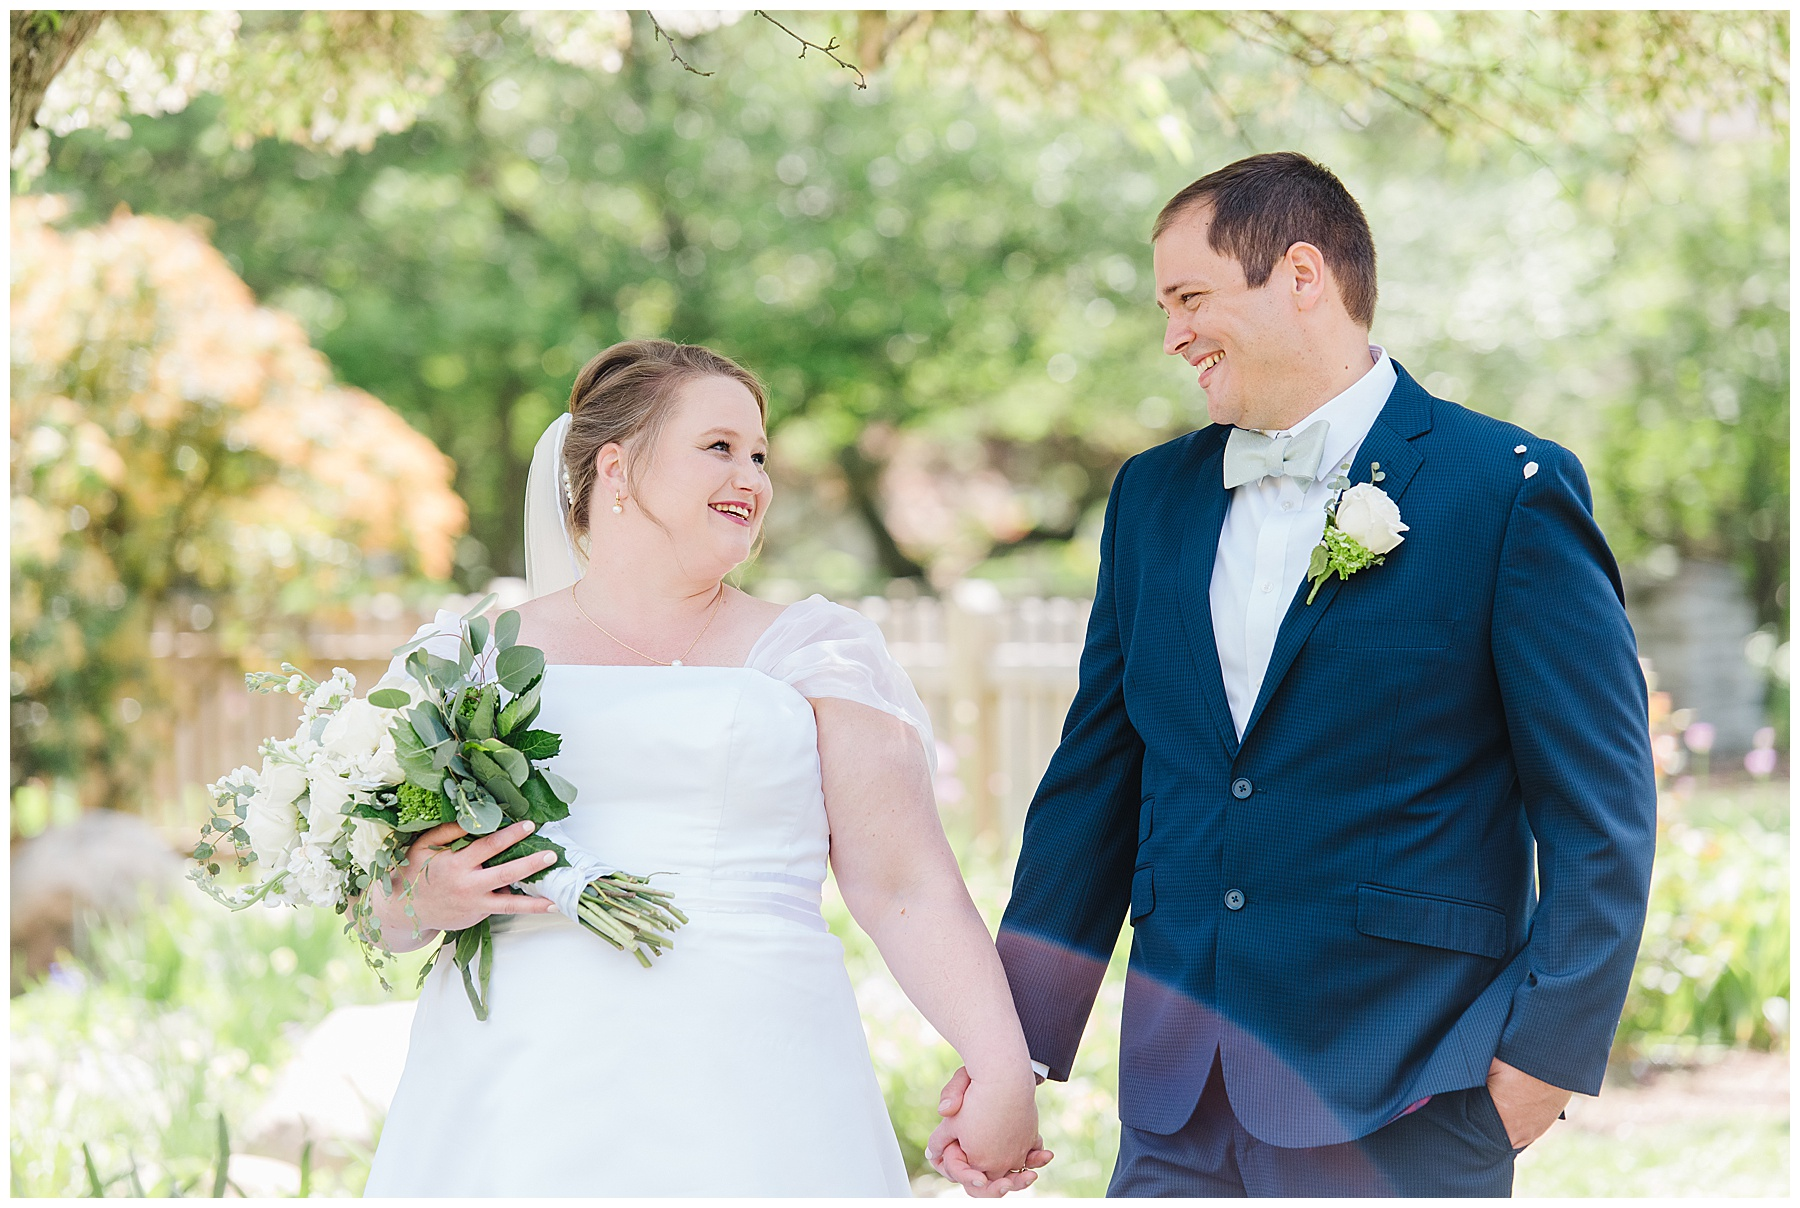 foster park fort wayne indiana wedding photographer_0246